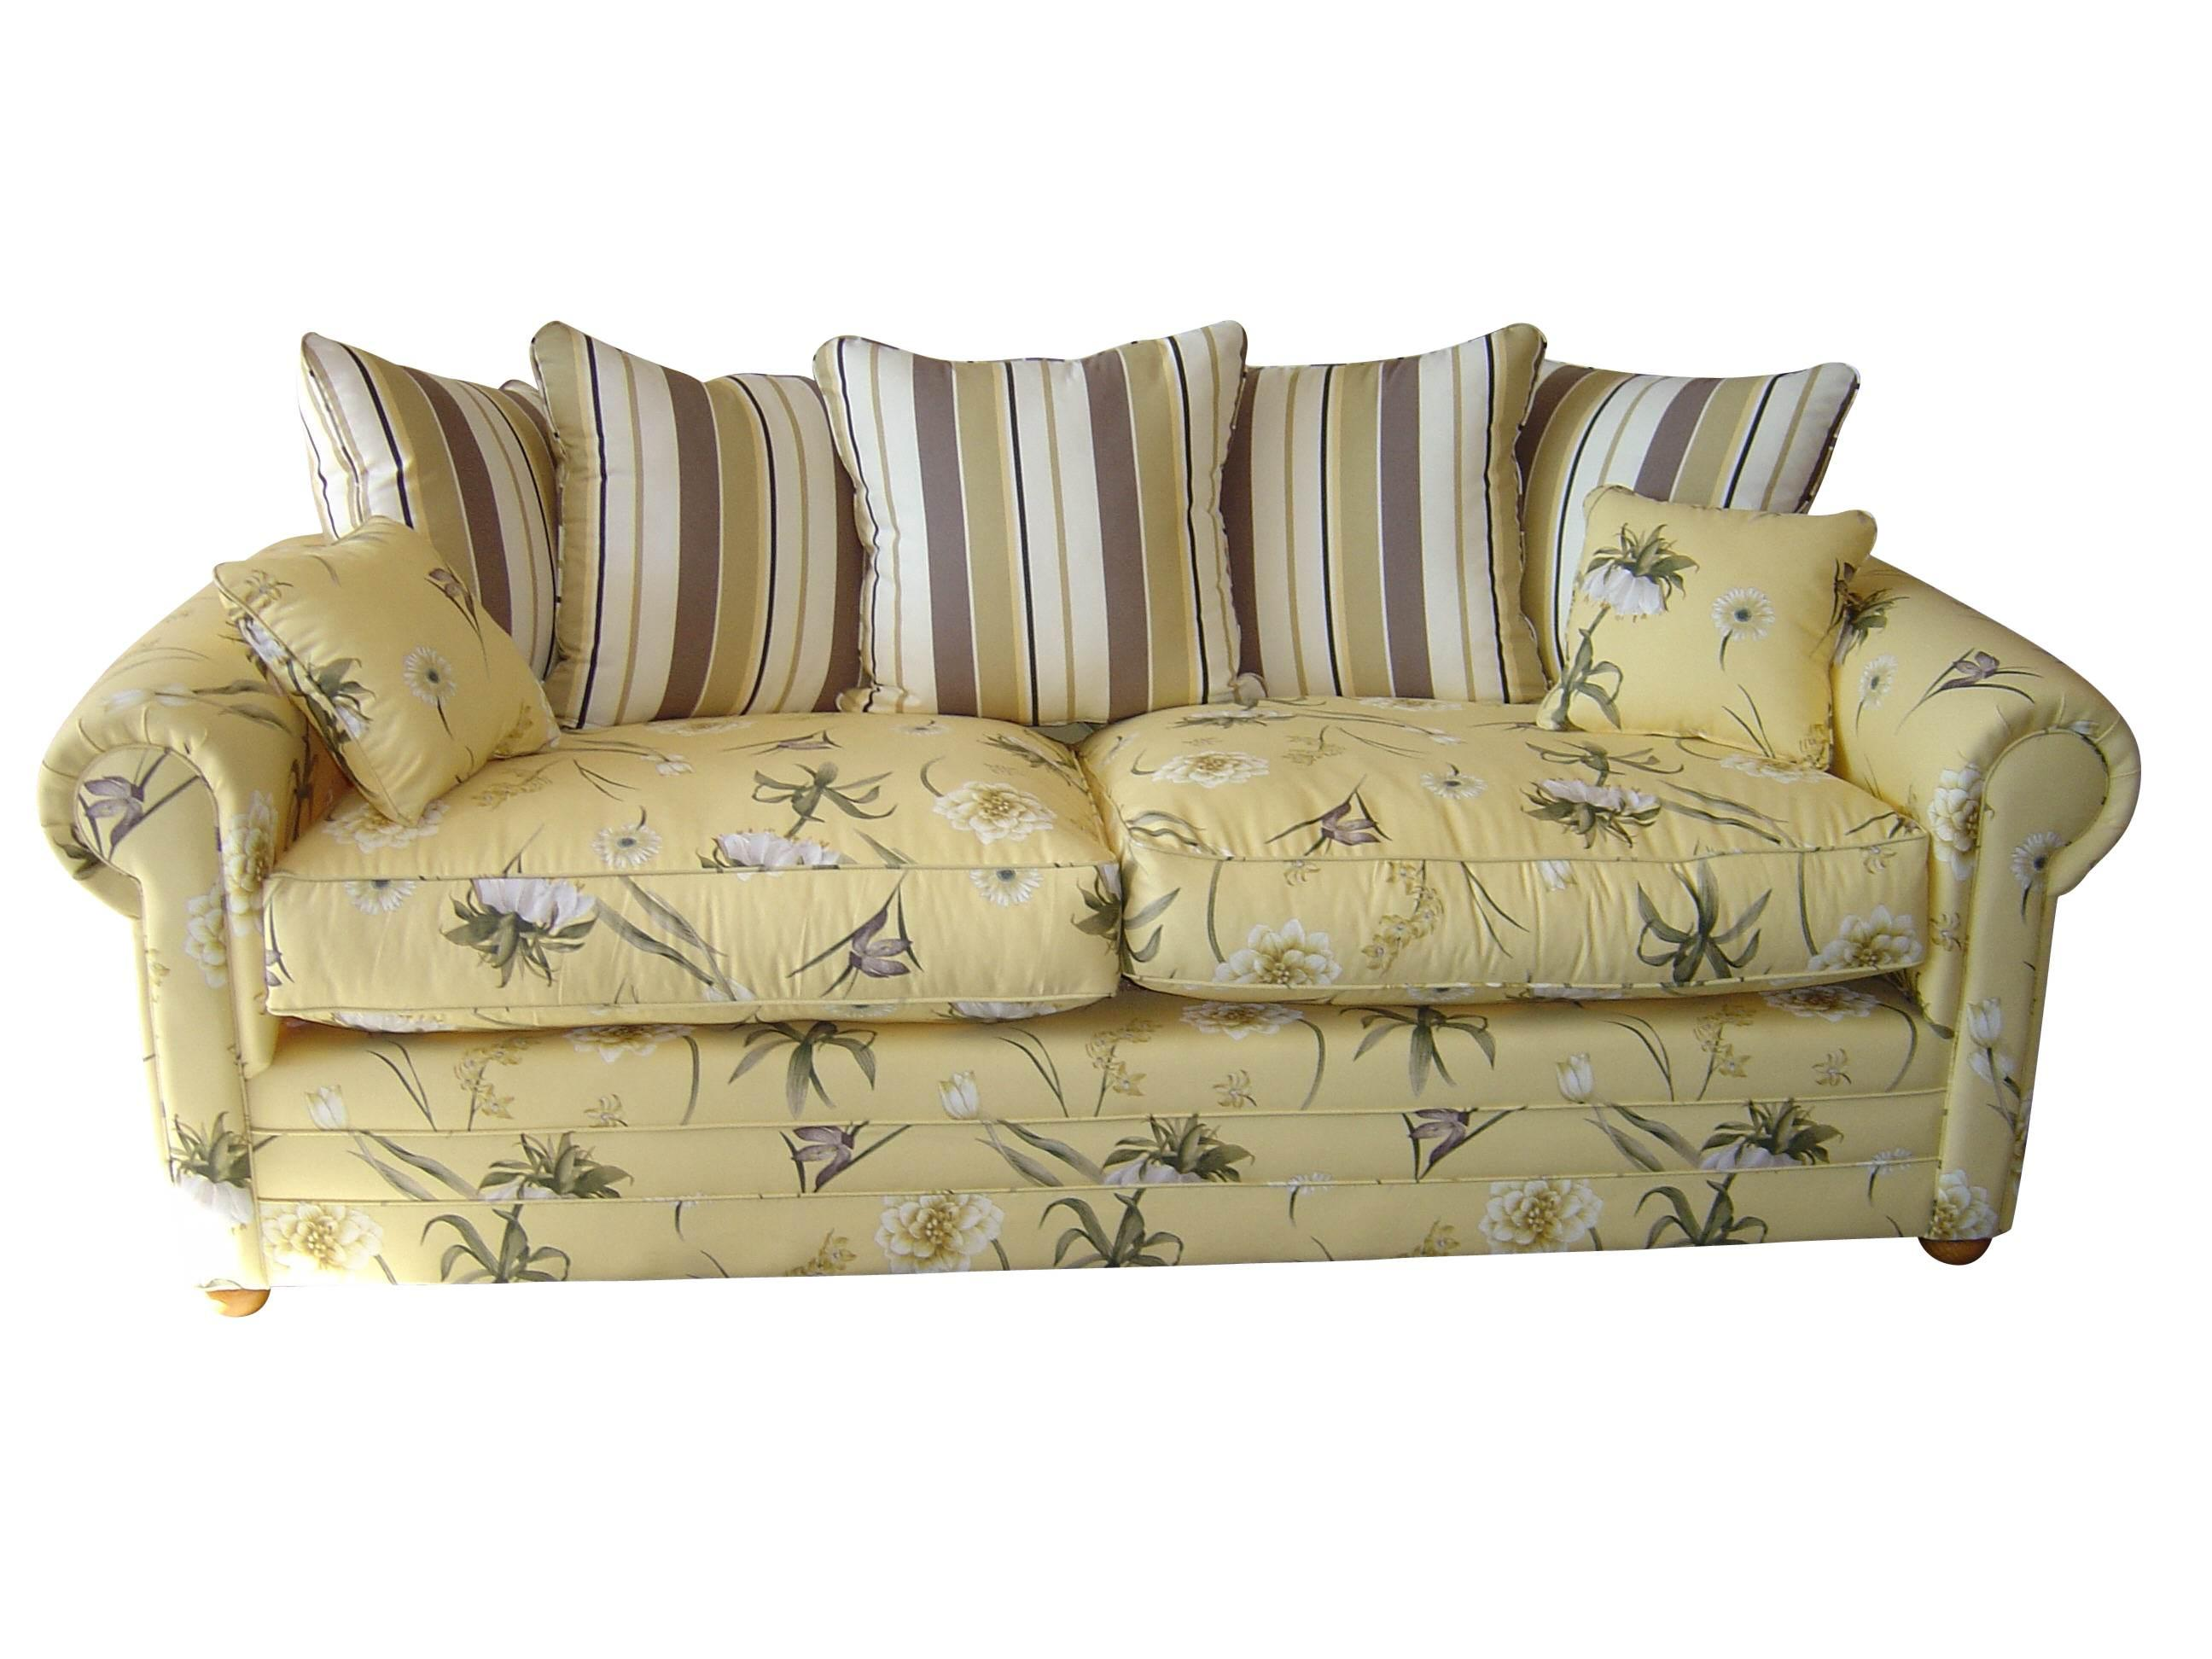 Alexandra sofabed or sofa sofa bed specialists Sofa specialists